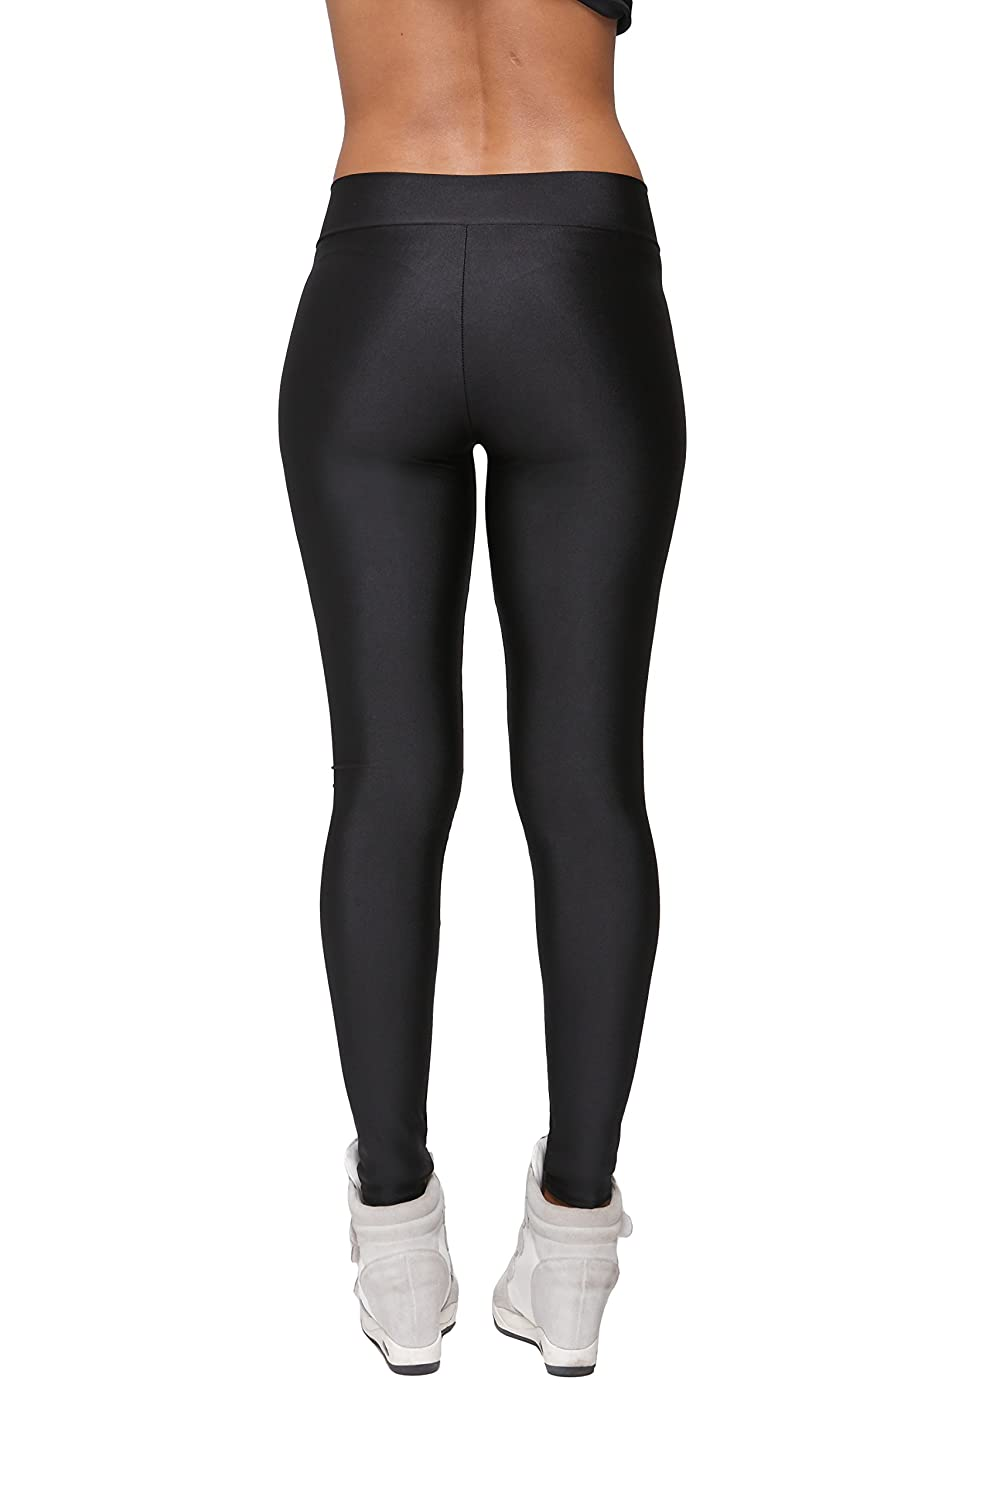 92a77e2ab18b1f Joy Bridalc Yukata Women's Stretch Skinny Shiny Spandex Yoga Leggings  Workout Sports Pants at Amazon Women's Clothing store: